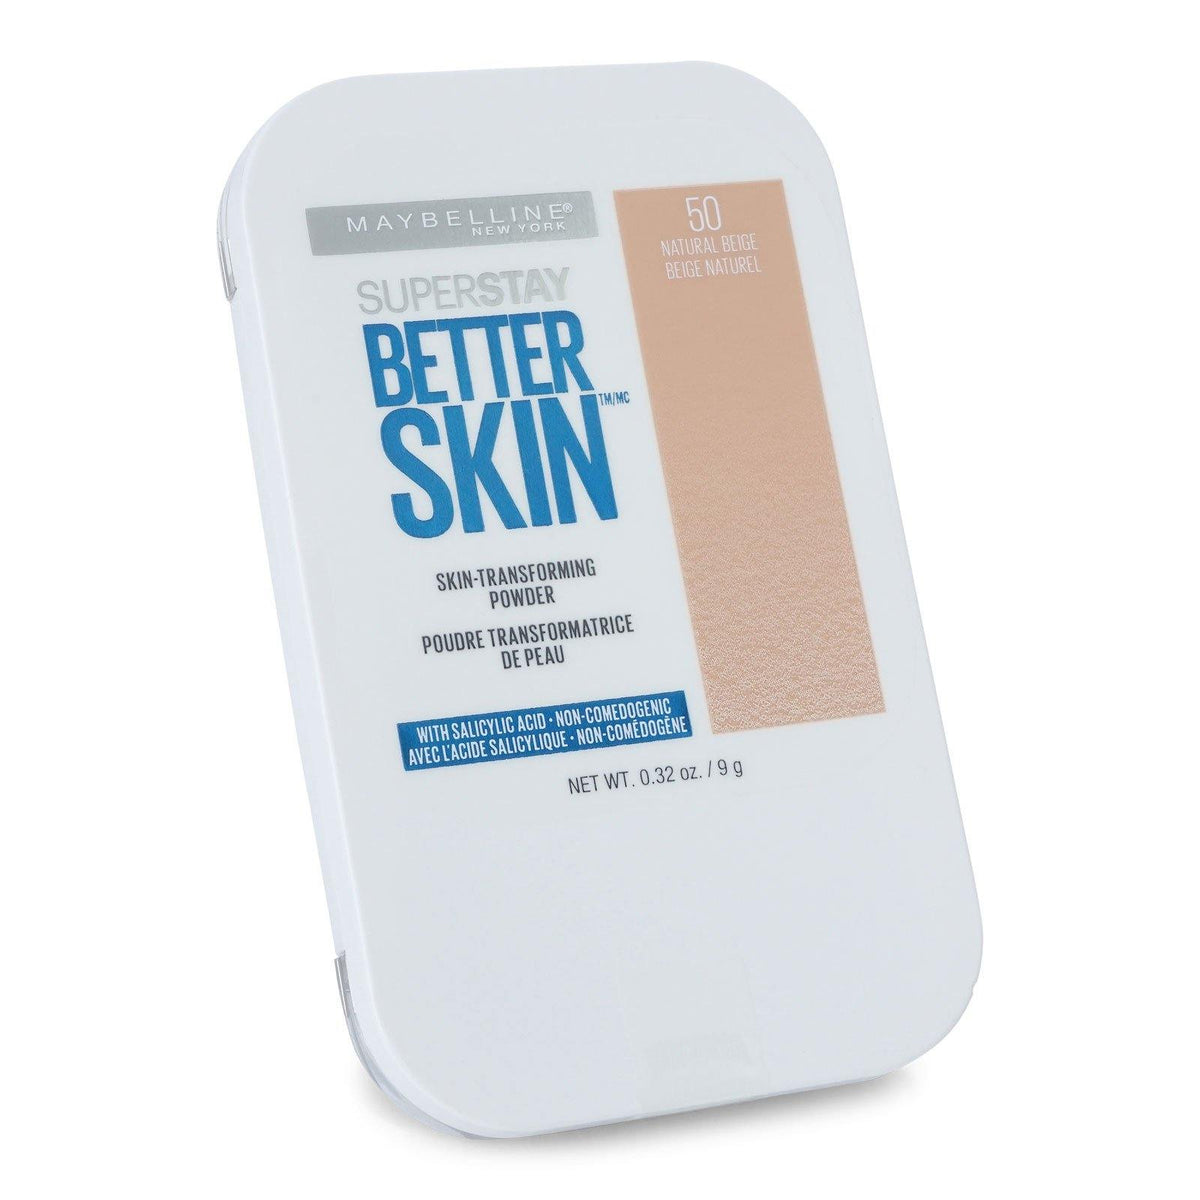 Maybelline Super Stay Better Skin Powder All-Day Oil Control (0.32oz/9g) (24/cs)